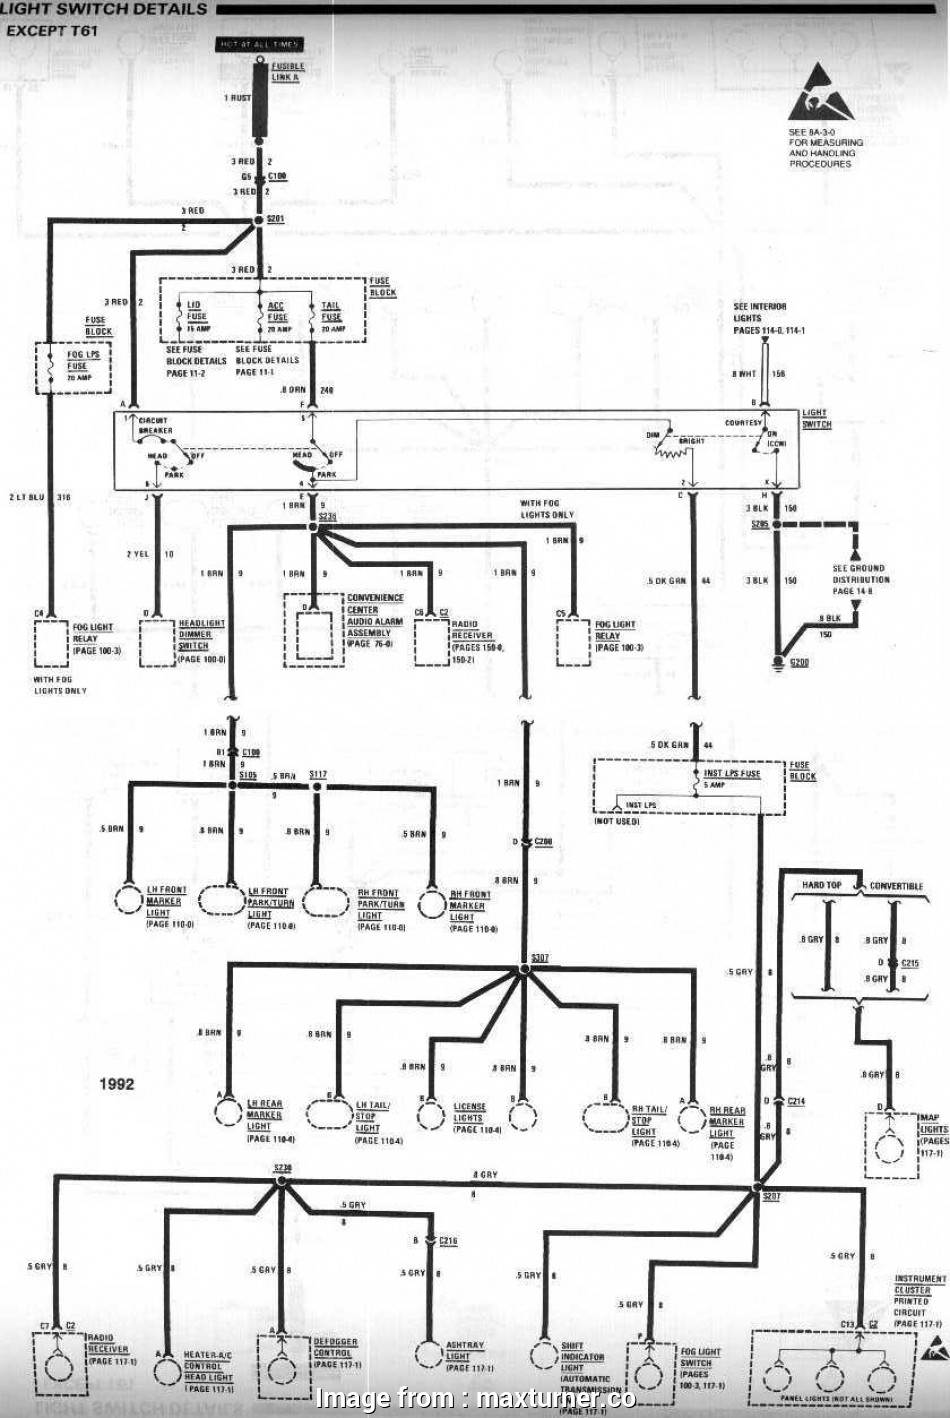 1981 Camaro Starter Wiring Diagram Gm Performance Wiring Diagram View A View A Zaafran It